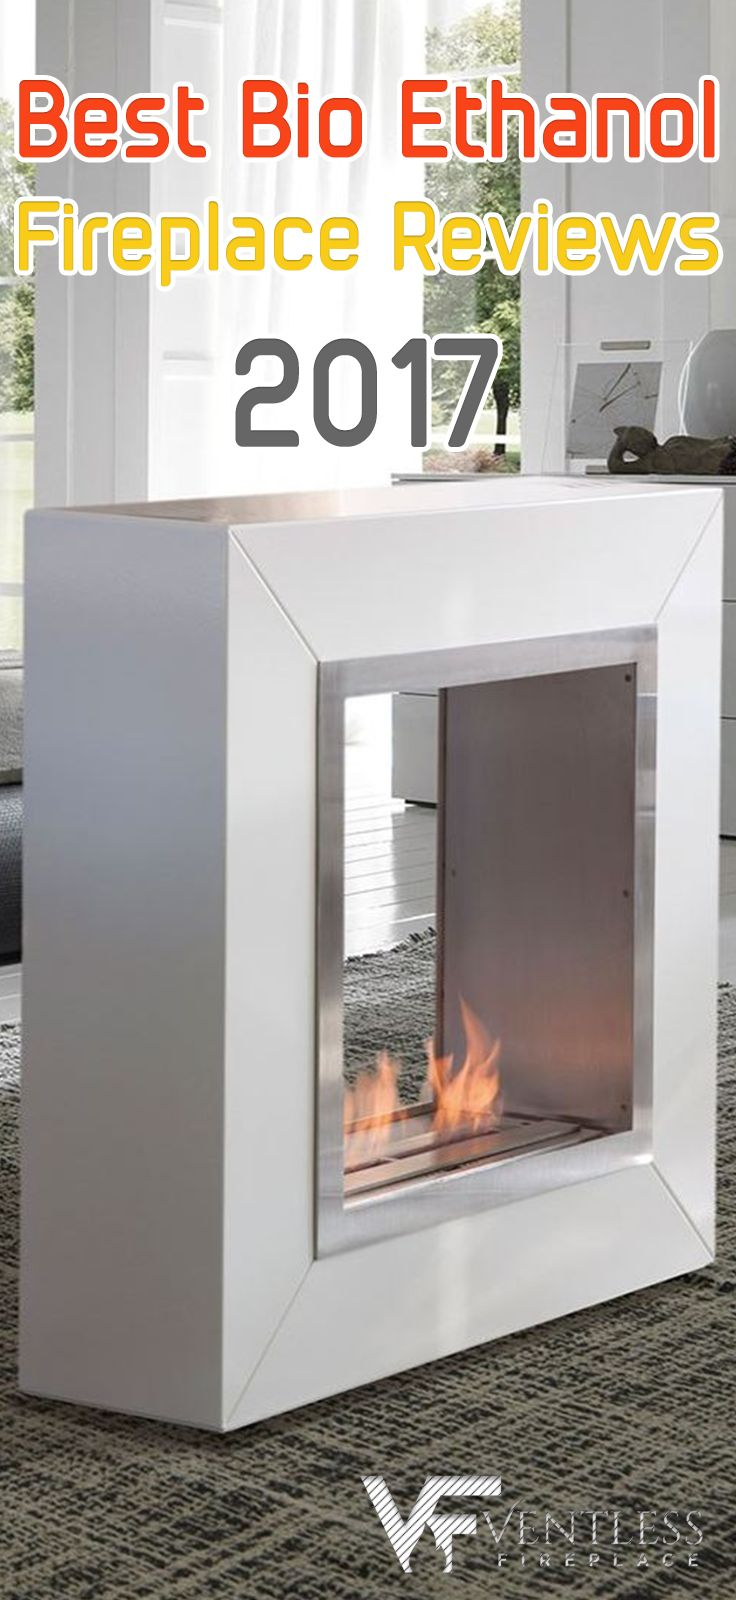 Cheminee Ethanol Melrose 7 Best Fireplace Images On Pinterest Fire Places Fireplace